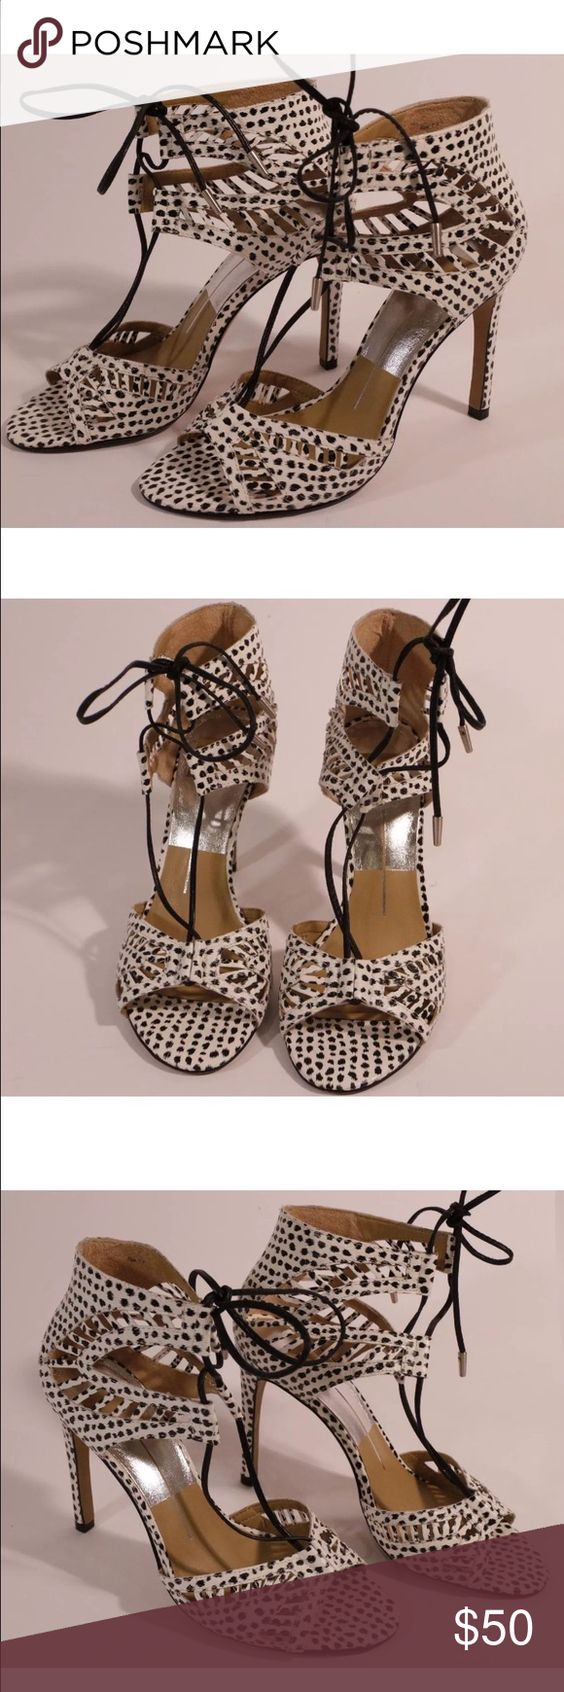 Dolce vita leather heels Pre owned, in very good condition! So cute! Dolce Vita Shoes Heels